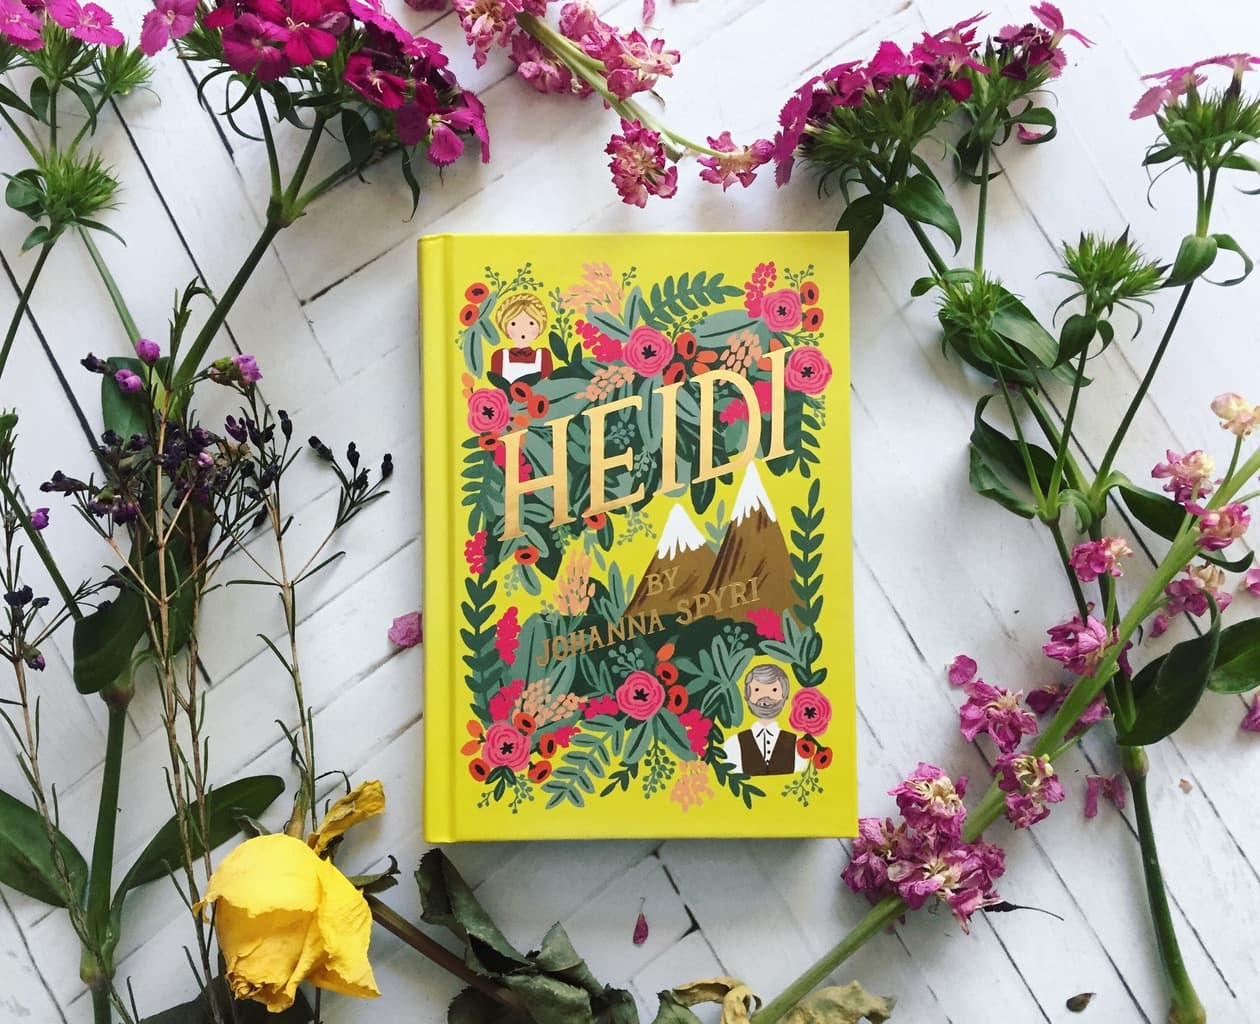 Heidi: A Children's Lit Mash-Up